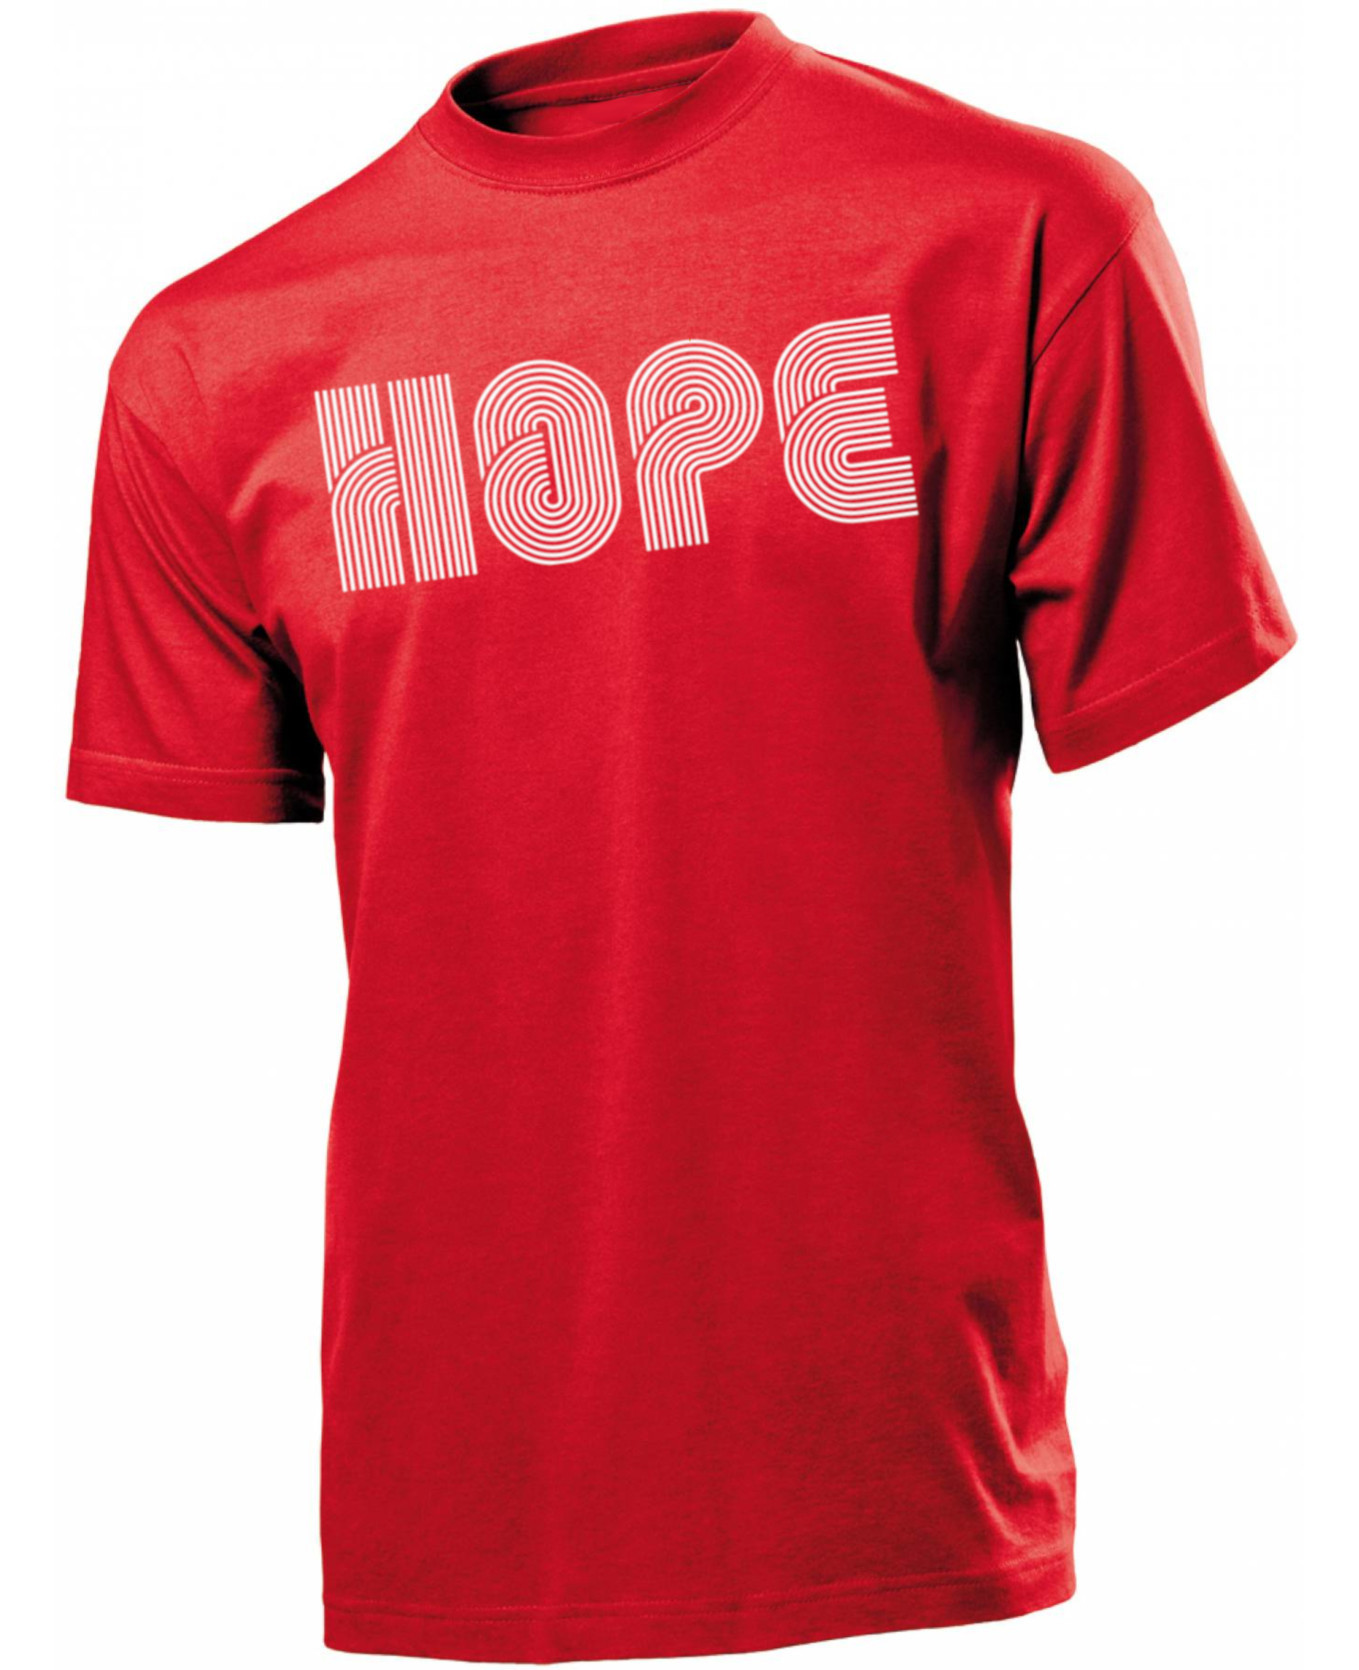 Hope | Frauen Tshirt